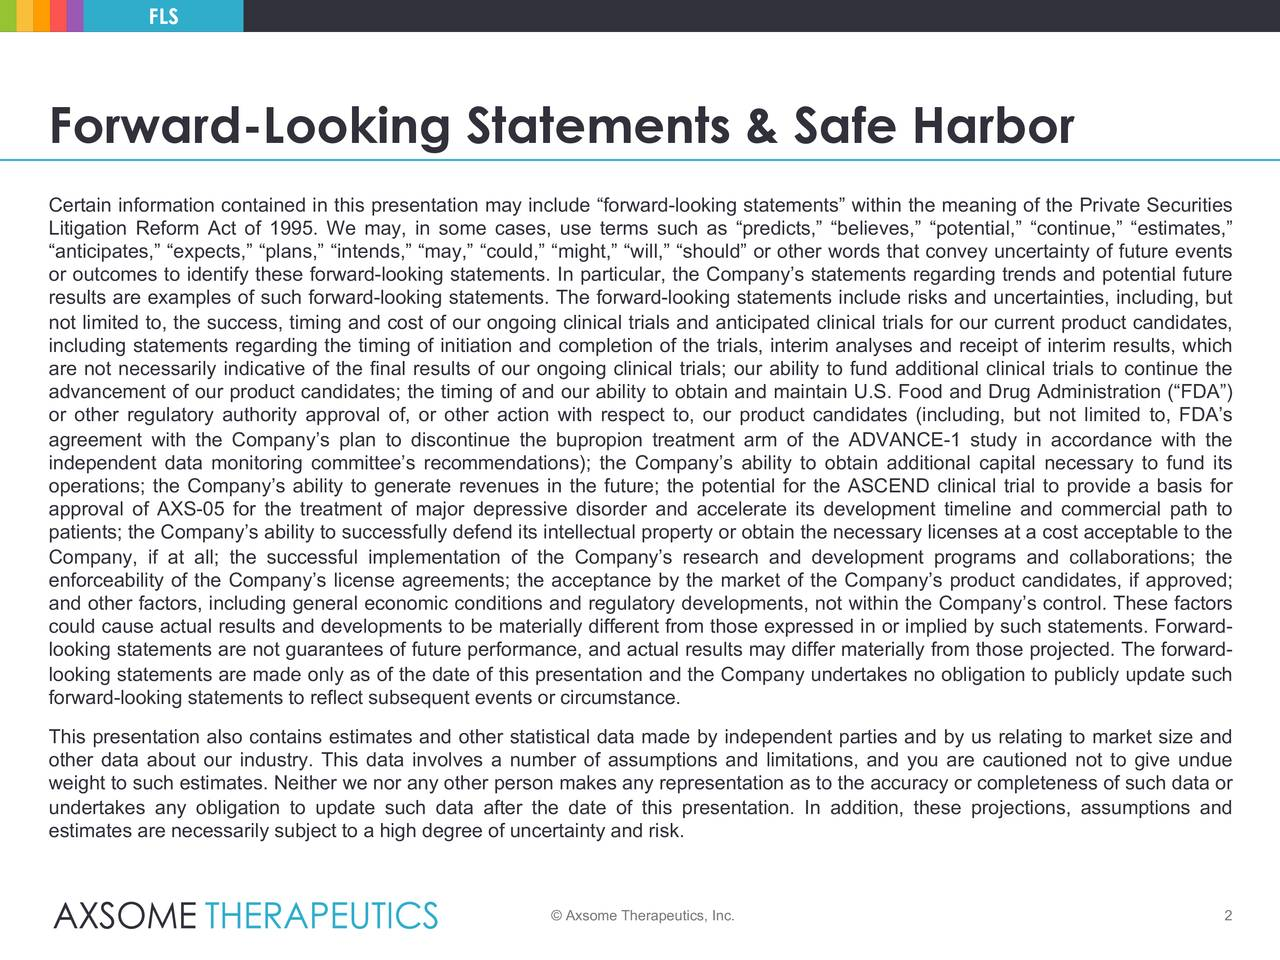 """Forward-Looking Statements & Safe Harbor Certain information contained in this presentation may include """"forward-looking statements"""" within the meaning of the Private Securities Litigation Reform Act of 1995. We may, in some cases, use terms such as """"predicts,"""" """"believes,"""" """"potential,"""" """"continue,"""" """"estimates,"""" """"anticipates,"""" """"expects,"""" """"plans,"""" """"intends,"""" """"may,"""" """"could,"""" """"might,"""" """"will,"""" """"should"""" or other words that convey uncertainty of future events or outcomes to identify these forward-looking statements. In particular, the Company's statements regarding trends and potential future results are examples of such forward-looking statements. The forward-looking statements include risks and uncertainties, including, but not limited to, the success, timing and cost of our ongoing clinical trials and anticipated clinical trials for our current product candidates, including statements regarding the timing of initiation and completion of the trials, interim analyses and receipt of interim results, which are not necessarily indicative of the final results of our ongoing clinical trials; our ability to fund additional clinical trials to continue the advancement of our product candidates; the timing of and our ability to obtain and maintain U.S. Food and Drug Administration (""""FDA"""") or other regulatory authority approval of, or other action with respect to, our product candidates (including, but not limited to, FDA's agreement with the Company's plan to discontinue the bupropion treatment arm of the ADVANCE-1 study in accordance with the independent data monitoring committee's recommendations); the Company's ability to obtain additional capital necessary to fund its operations; the Company's ability to generate revenues in the future; the potential for the ASCEND clinical trial to provide a basis for approval of AXS-05 for the treatment of major depressive disorder and accelerate its development timeline and commercial path to patients; the Company's ability to successfully d"""